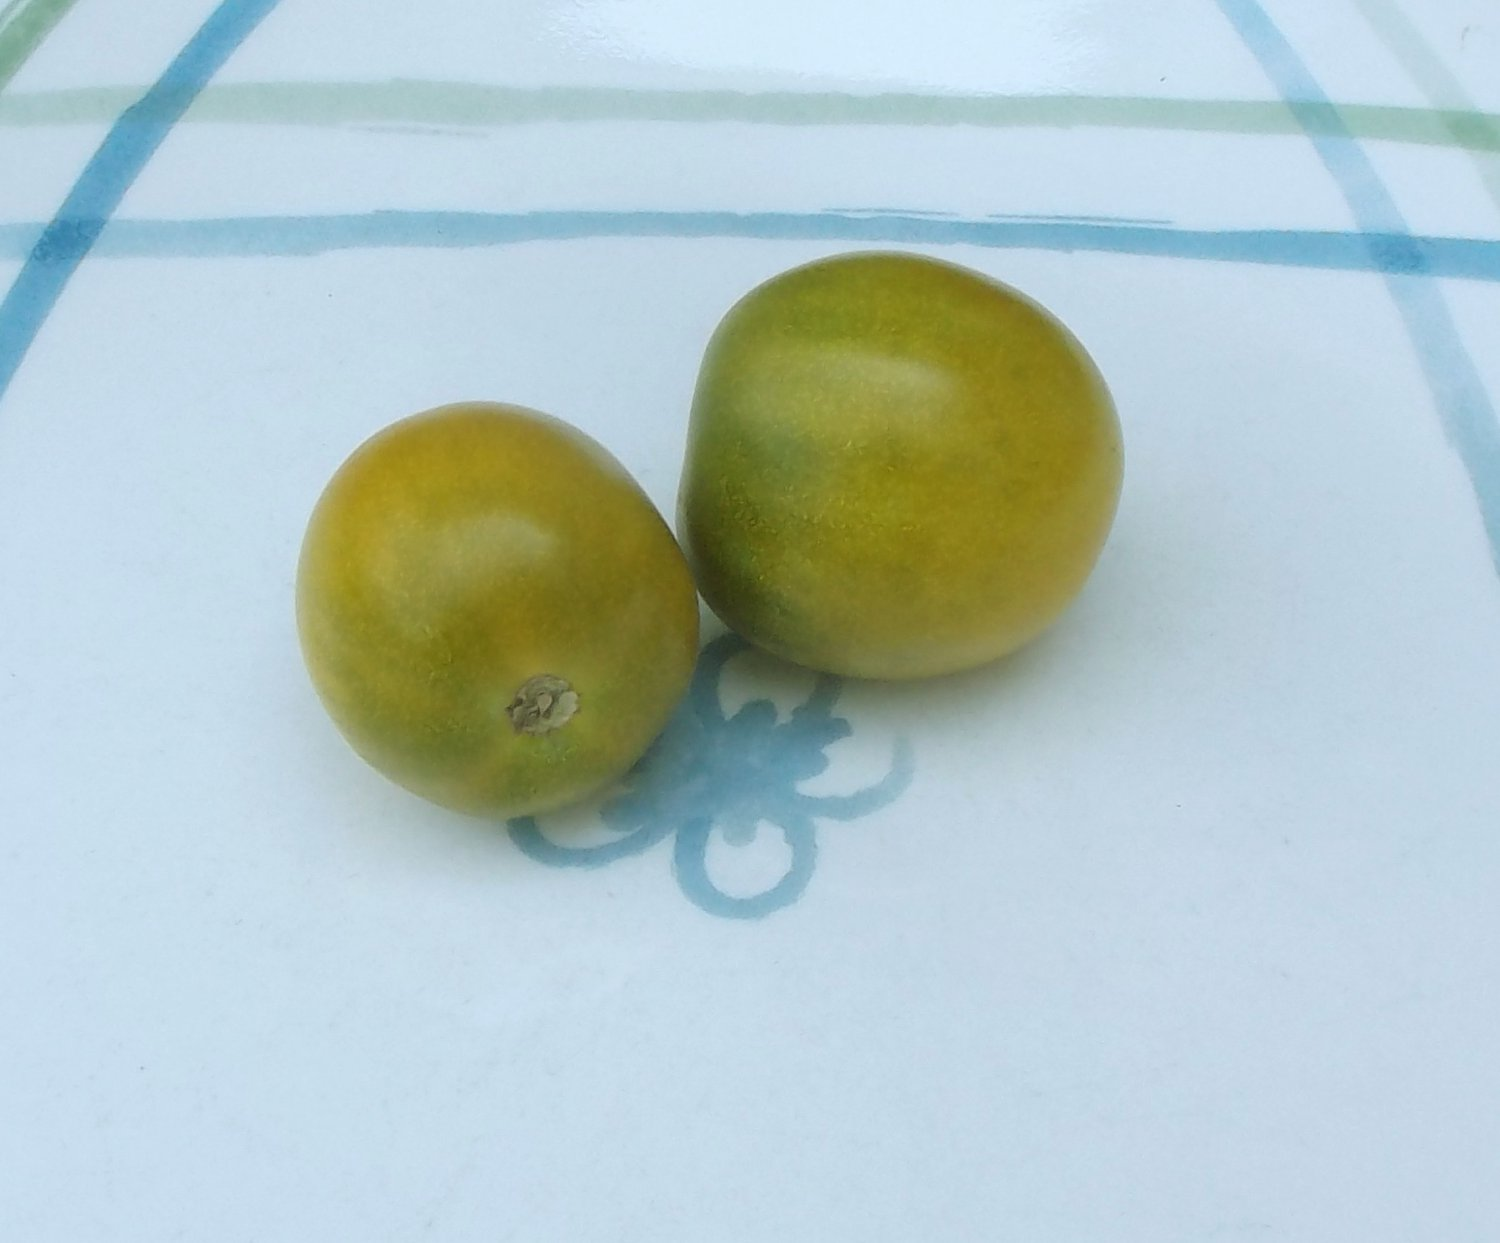 Artisan GREEN GRAPE Tomato ( Solanum lycopersicum ) - 15 seeds  ~gemsandstems.info~